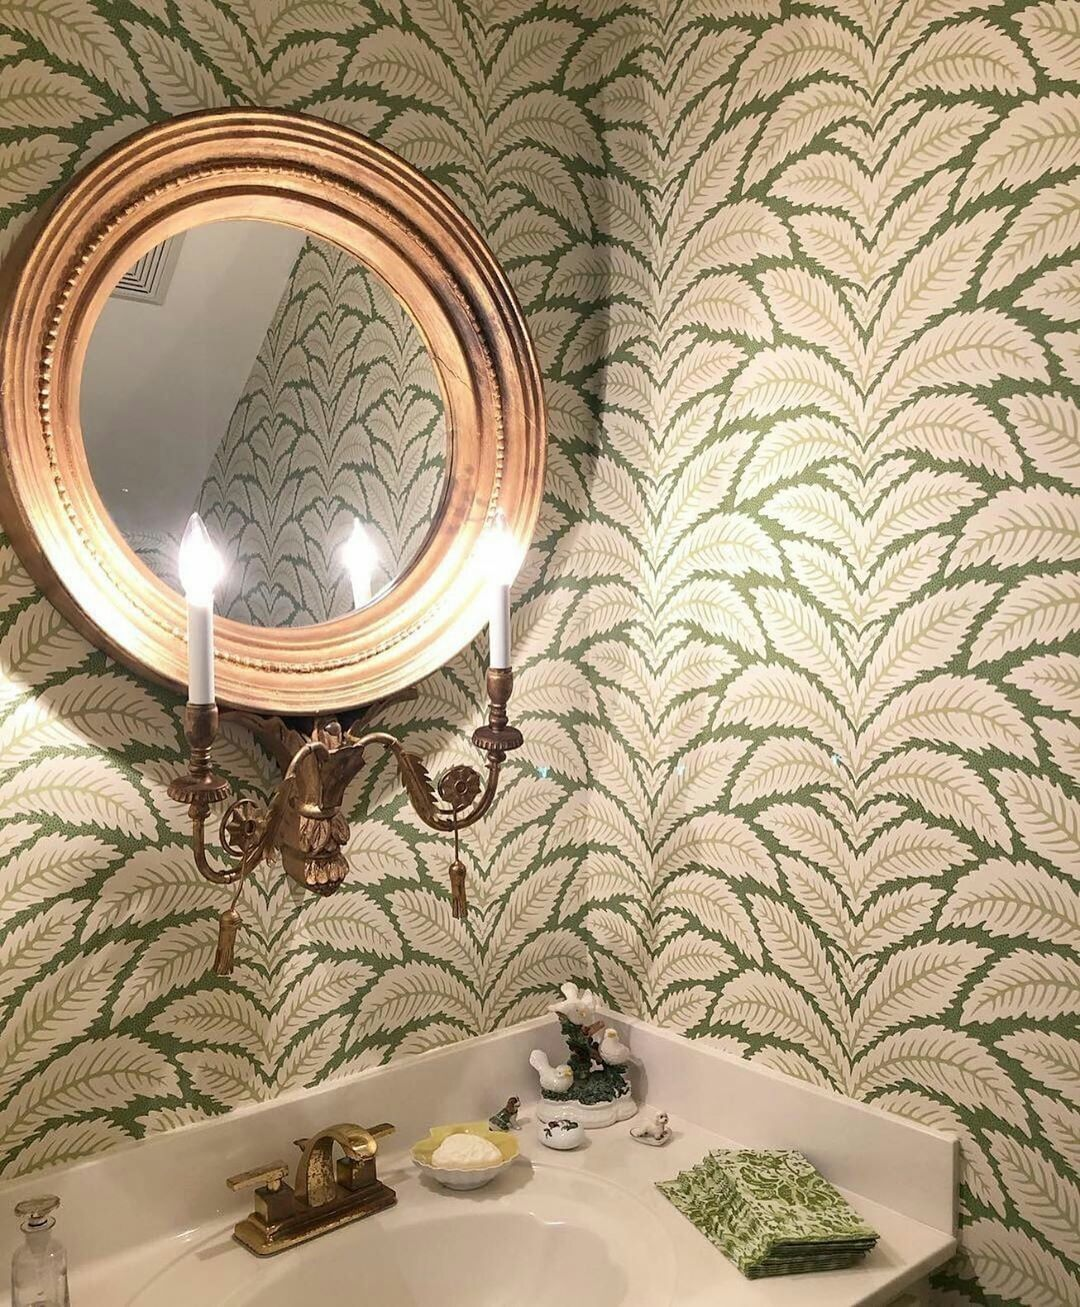 Create This Botanical And Luxurious Look With The Talavera Wallpaper From Brunschwig Fils Wallcov Talavera Wallpaper Wallpaper Stores Round Mirror Bathroom